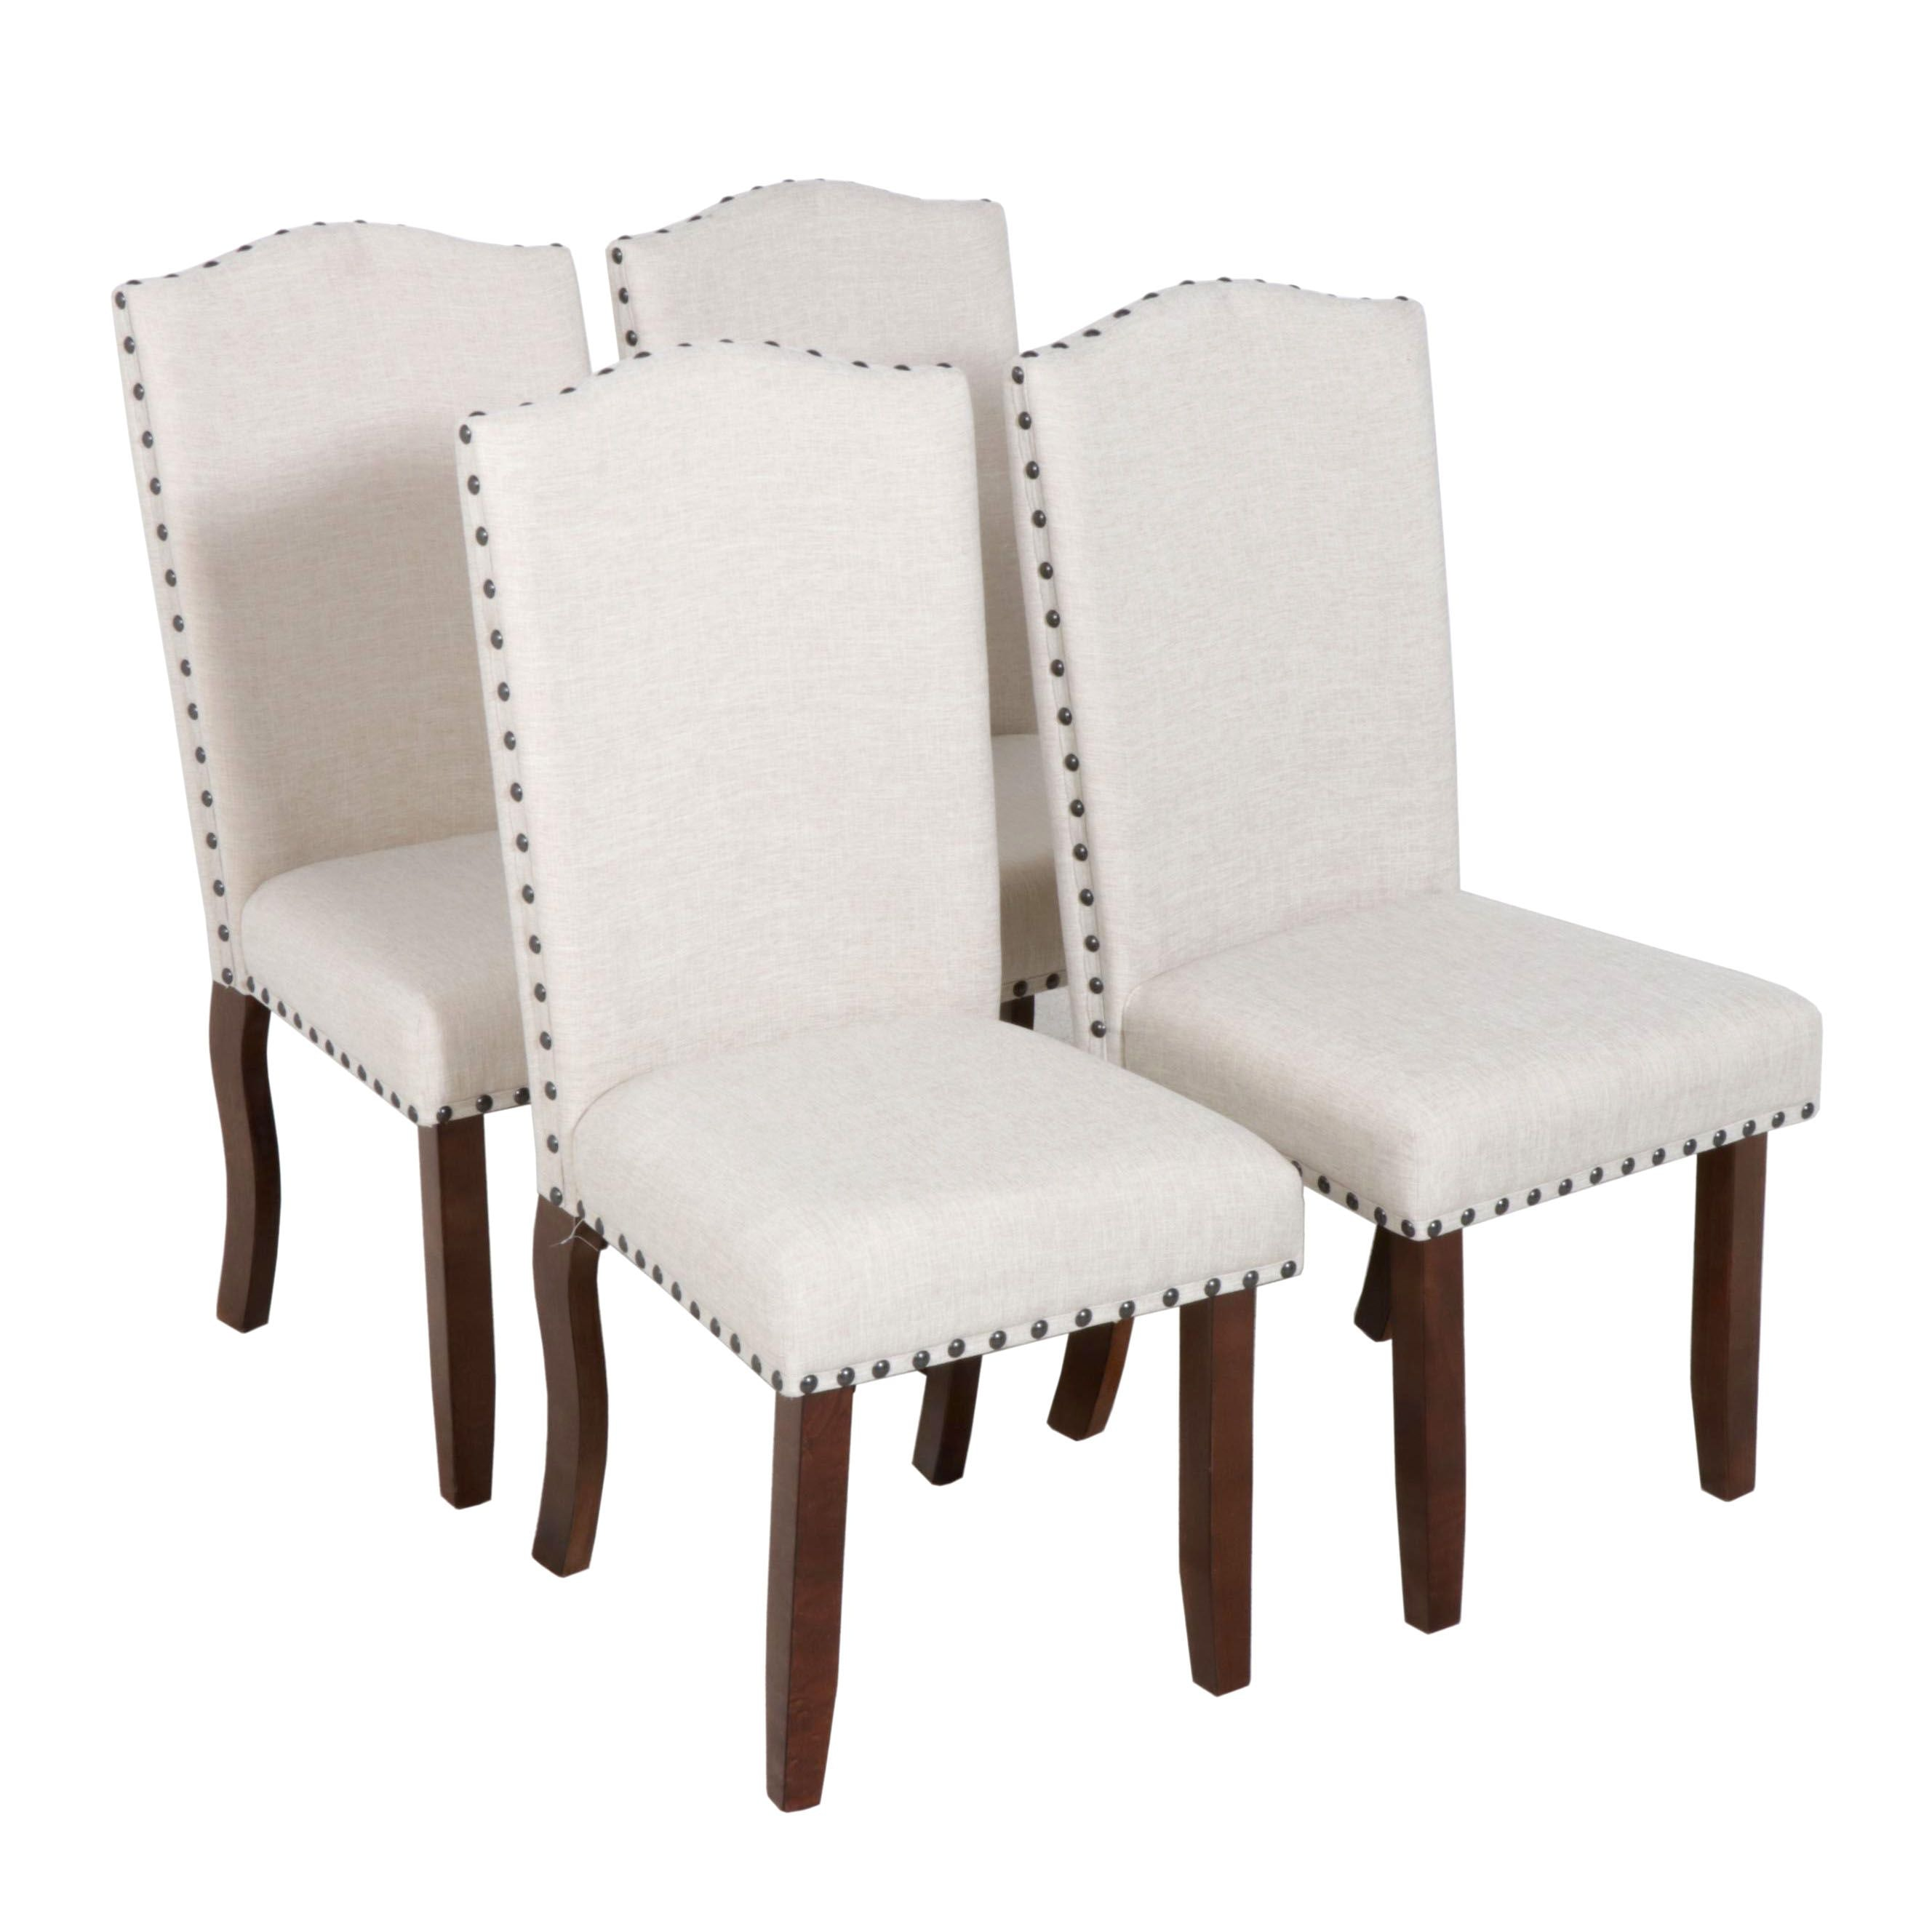 Four Contemporary Upholstered Dining Chairs